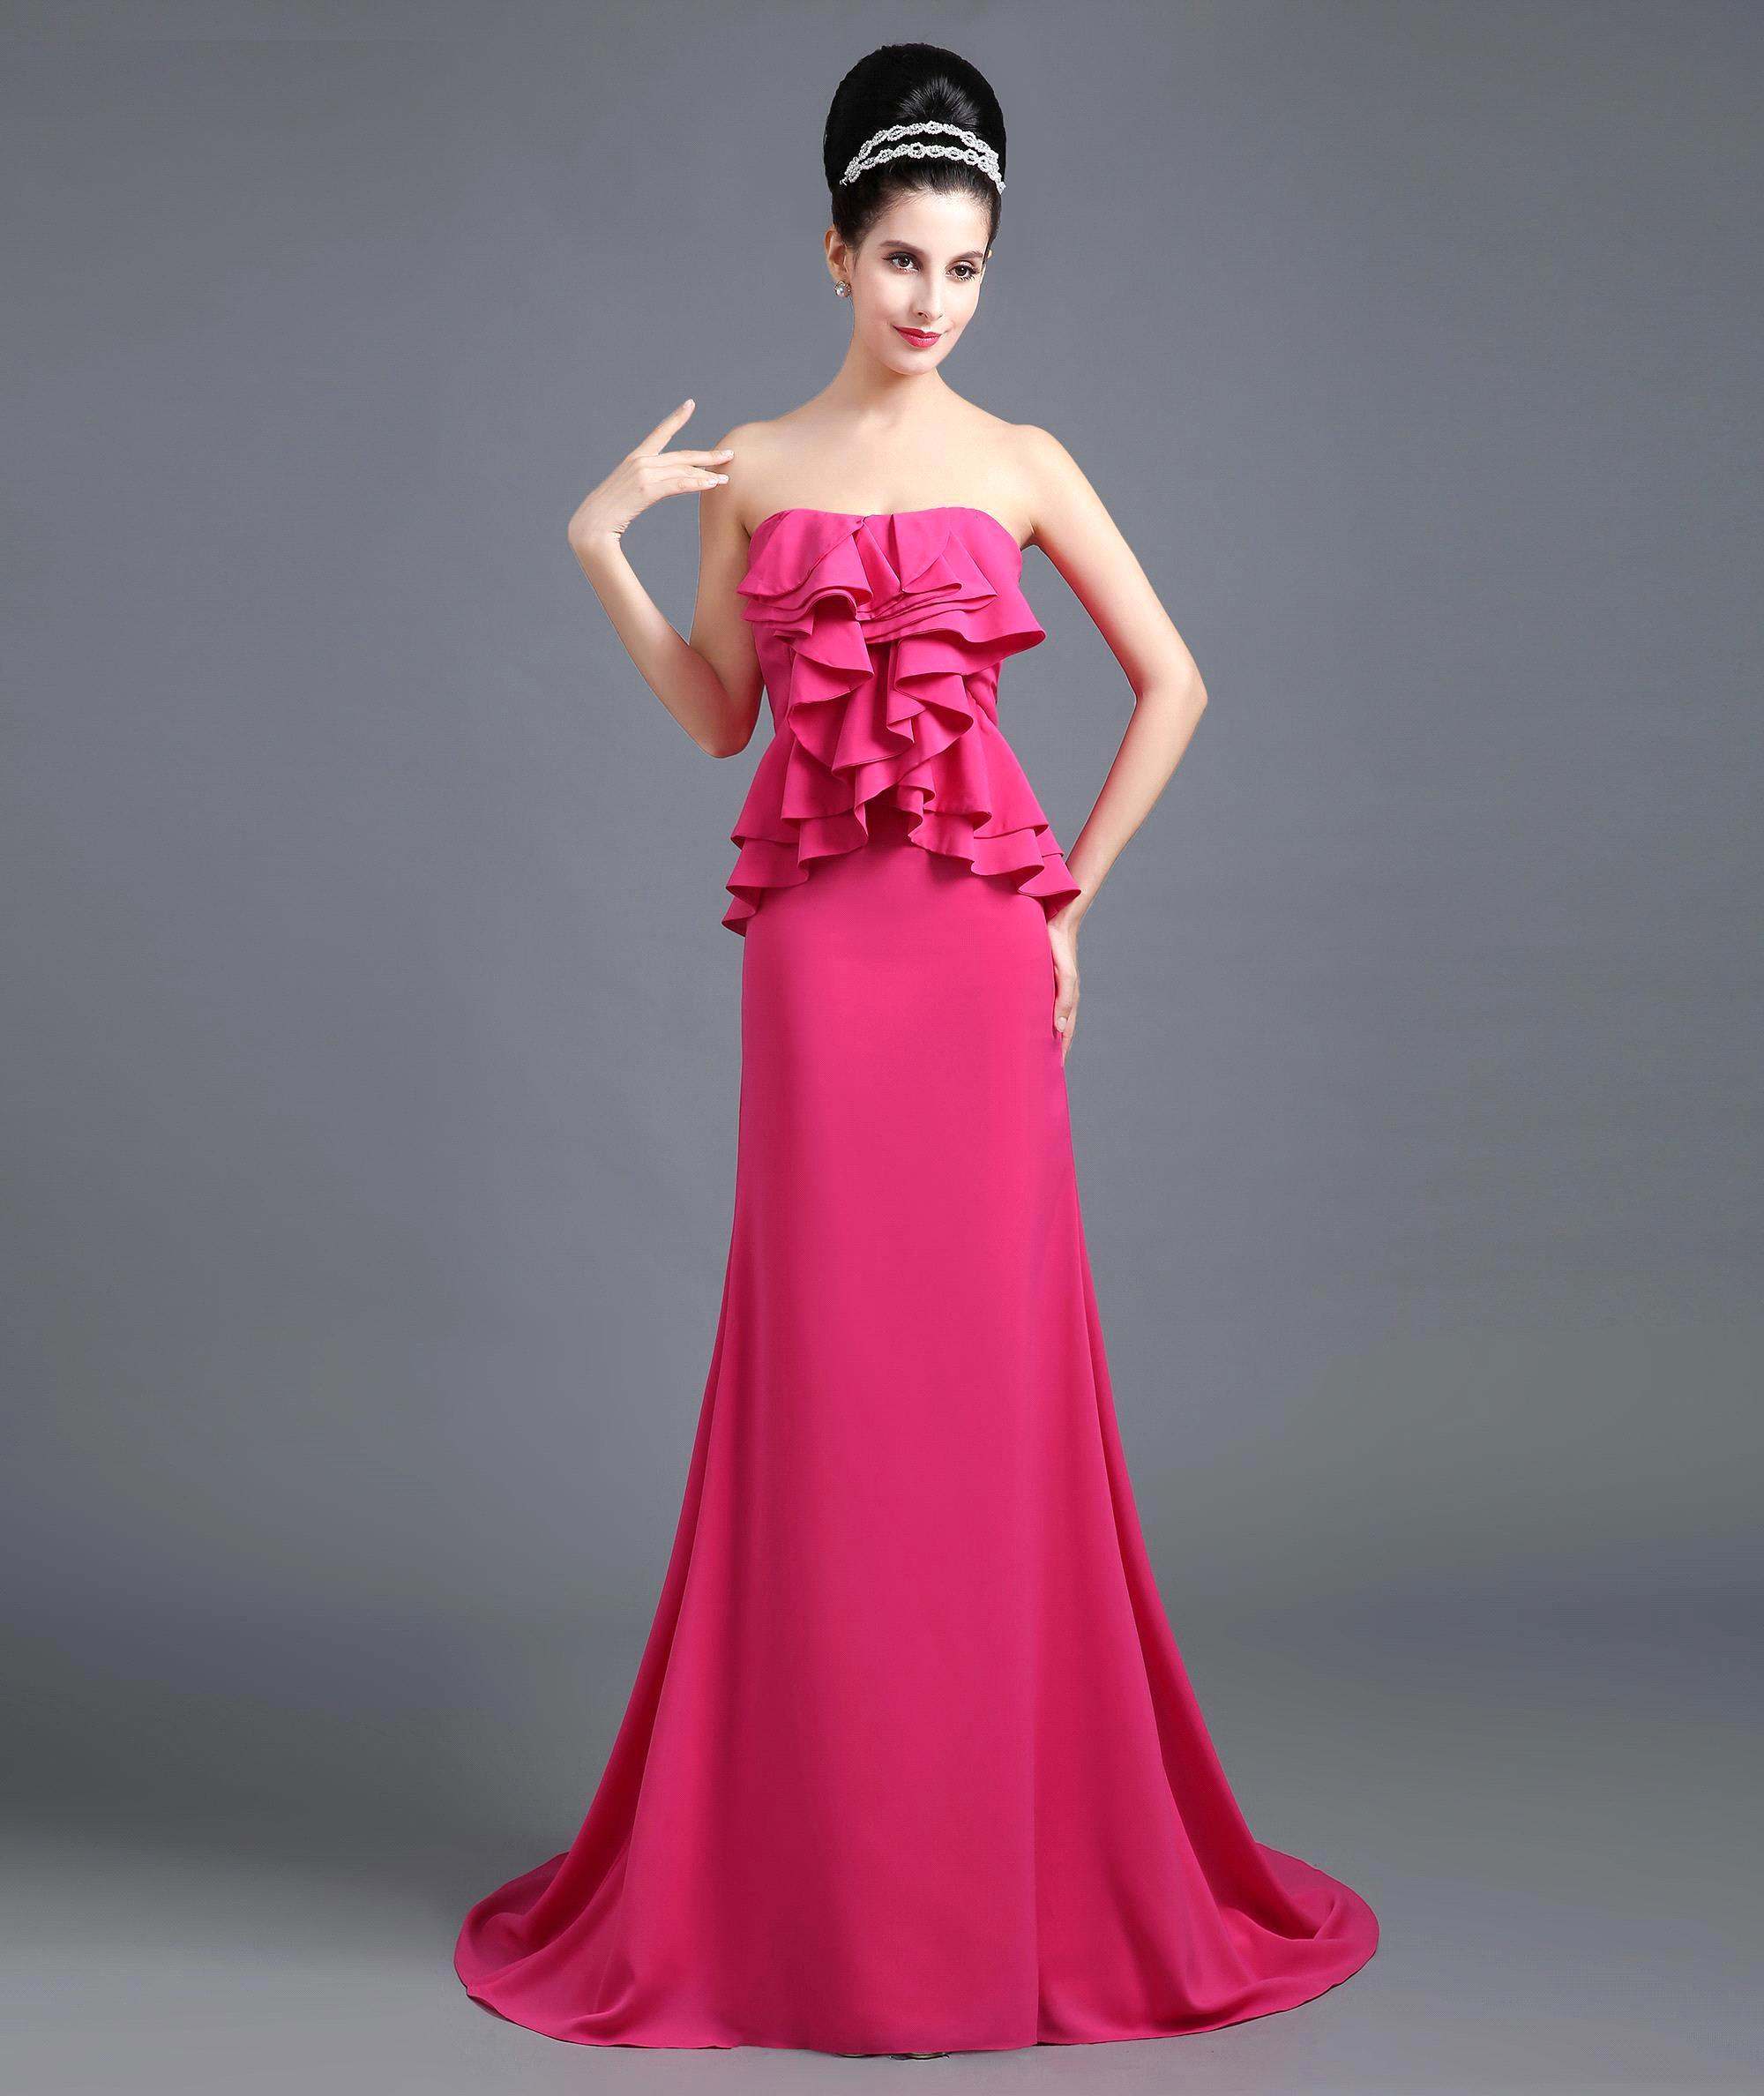 Images of Pink Prom Dresses Under 100 - Reikian